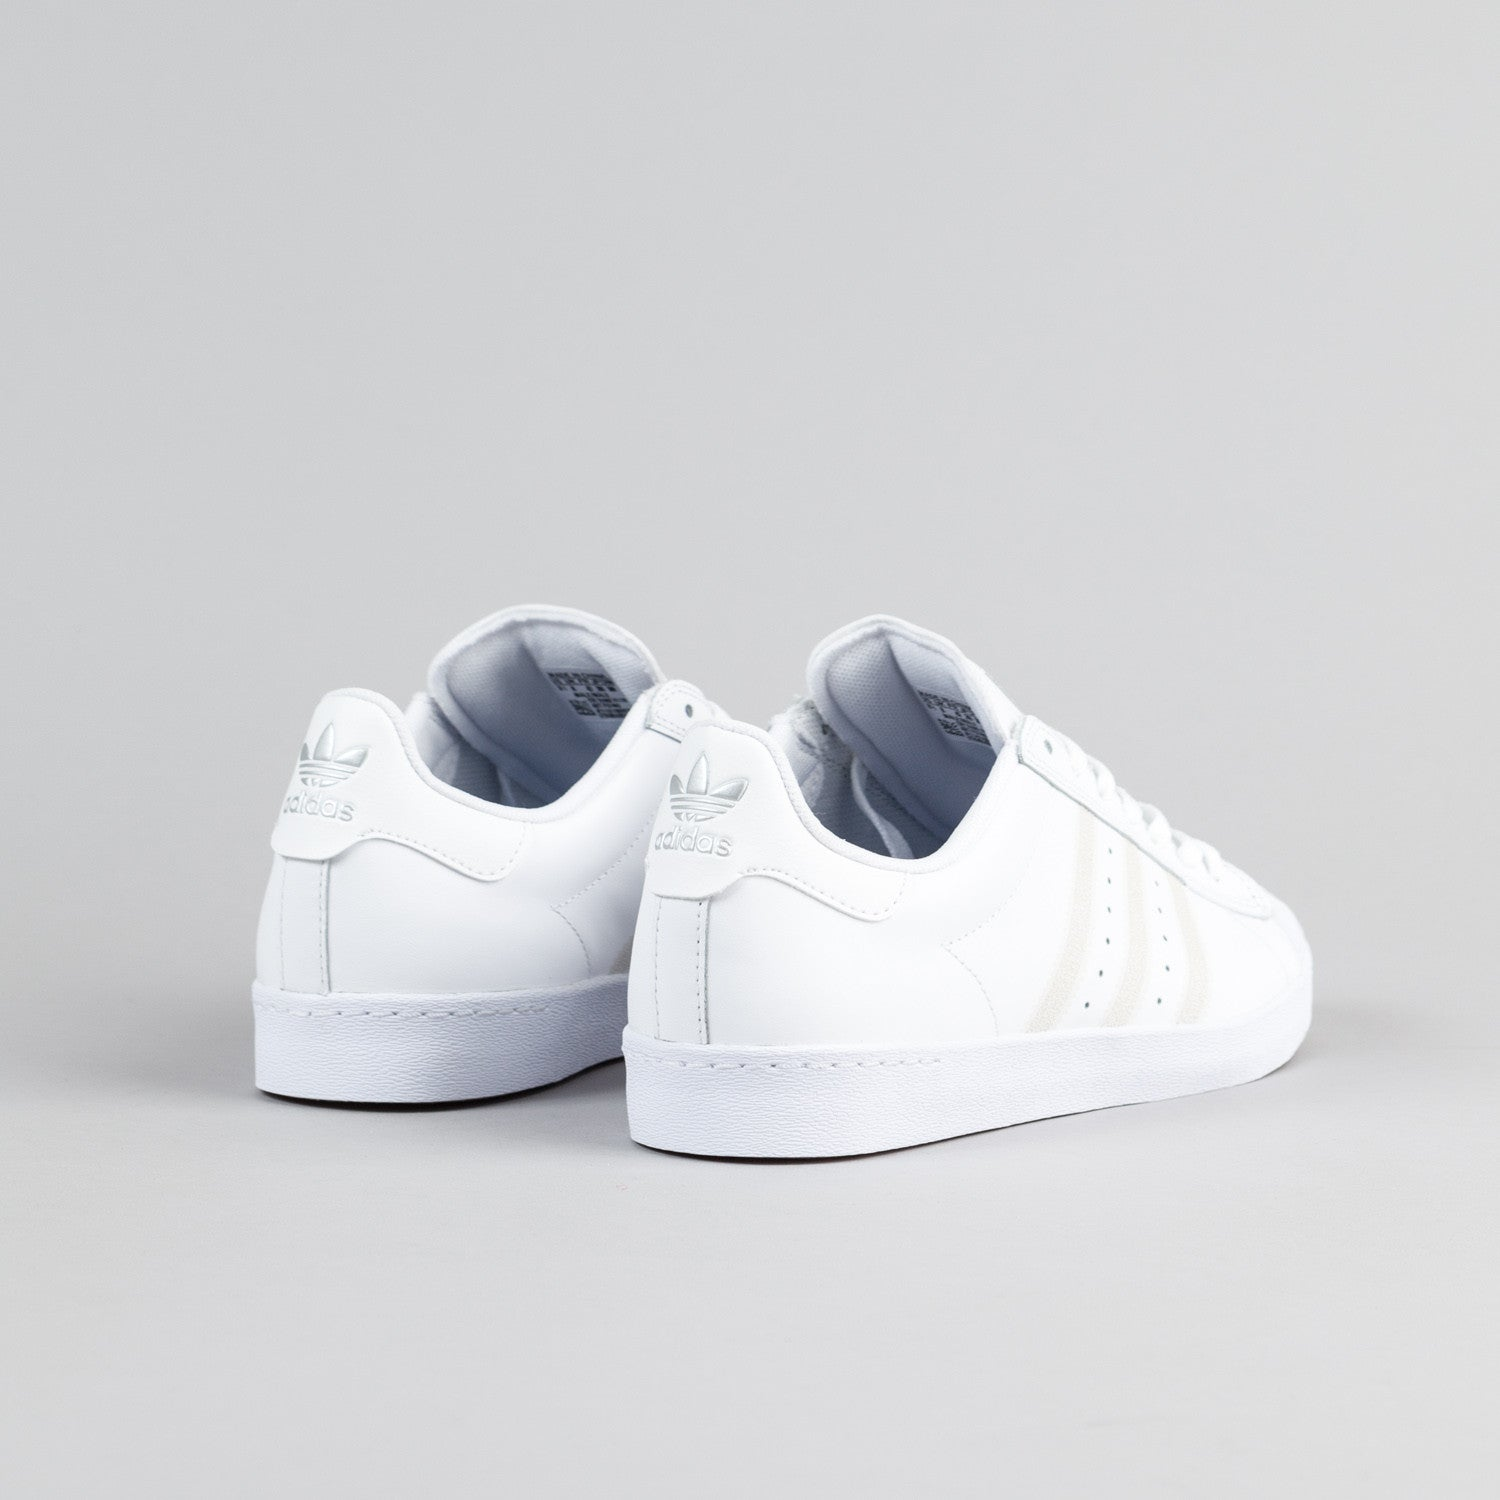 DS Adidas Superstar Vulc ADV Size 8/Size 11 White/Black D68718